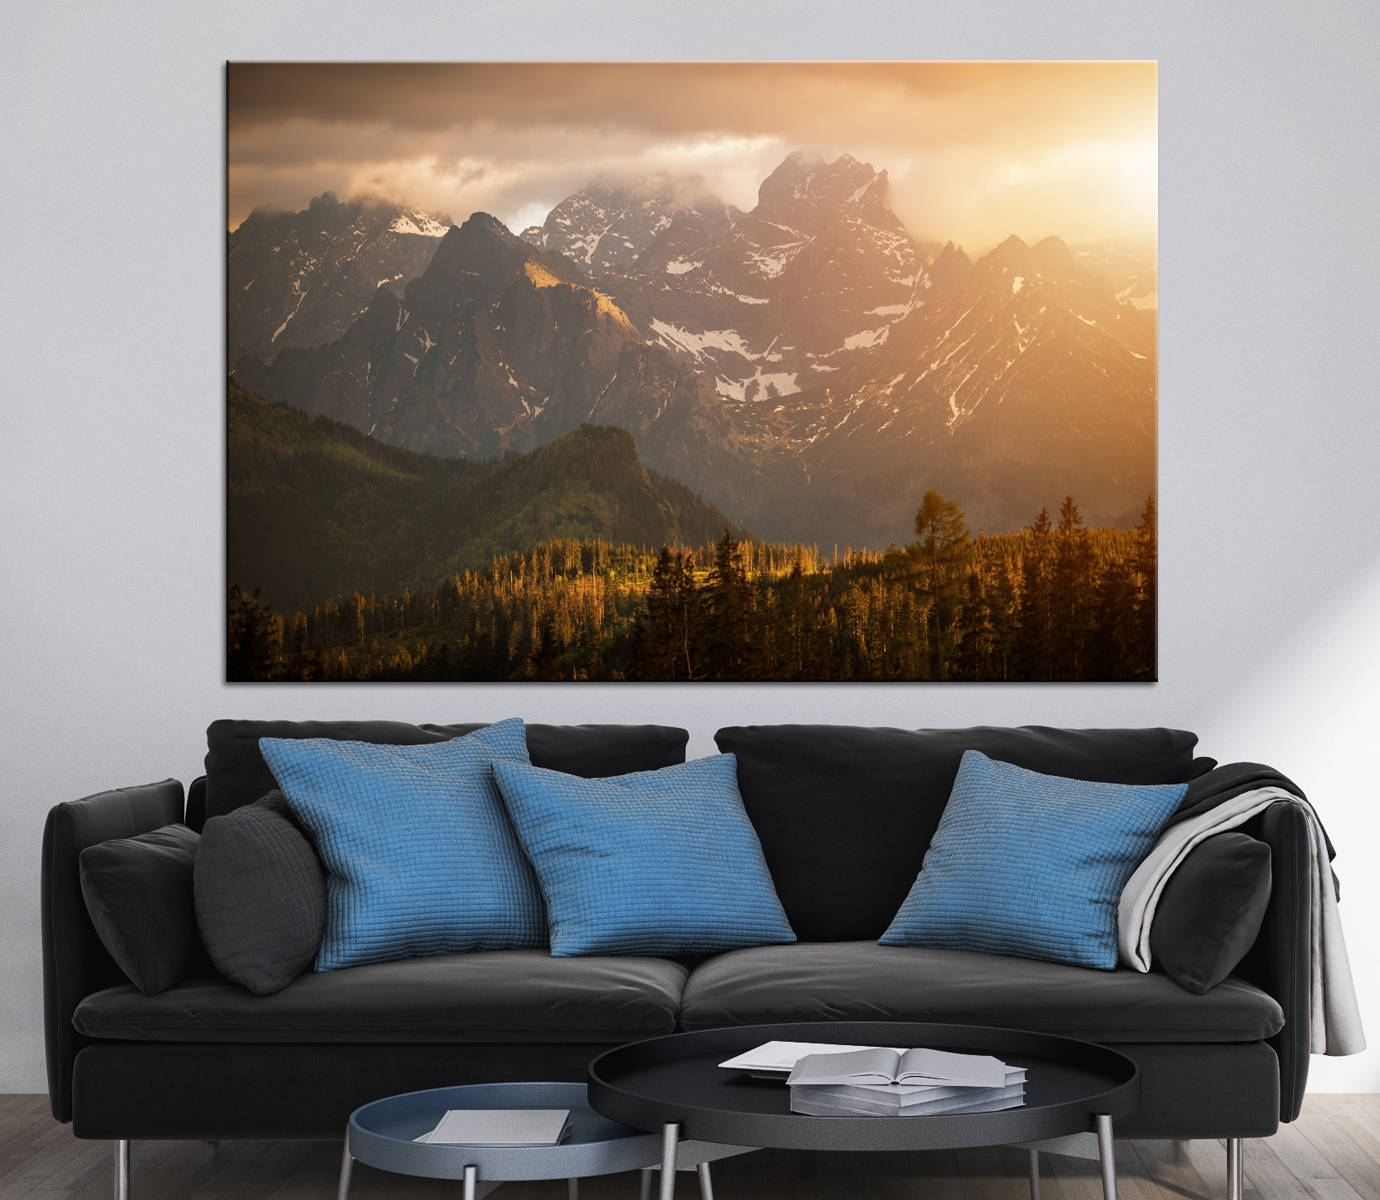 Mountains Sunset Scenery Photoprint Multi Panel Canvas Print Wild Pertaining To Most Up To Date Mountains Canvas Wall Art (Gallery 4 of 15)